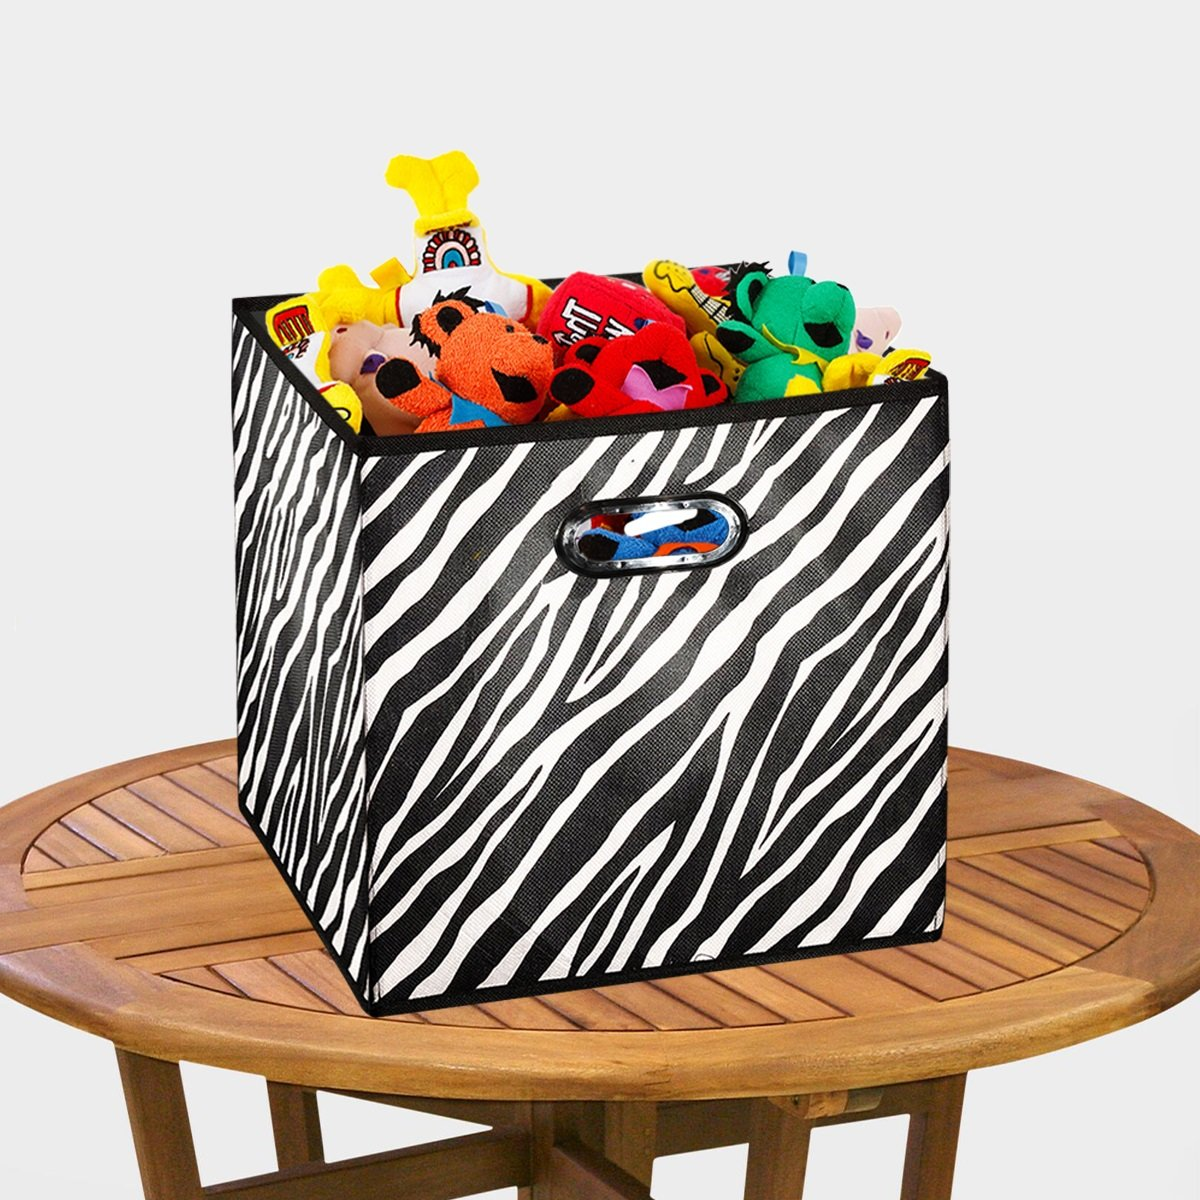 Merveilleux [10 Pack Zebra Pattern] Large Storage Bins, Containers, Boxes, Tote,  Baskets  Collapsible Storage Cubes For Household Offices Organization   Nursery Cubes  ...